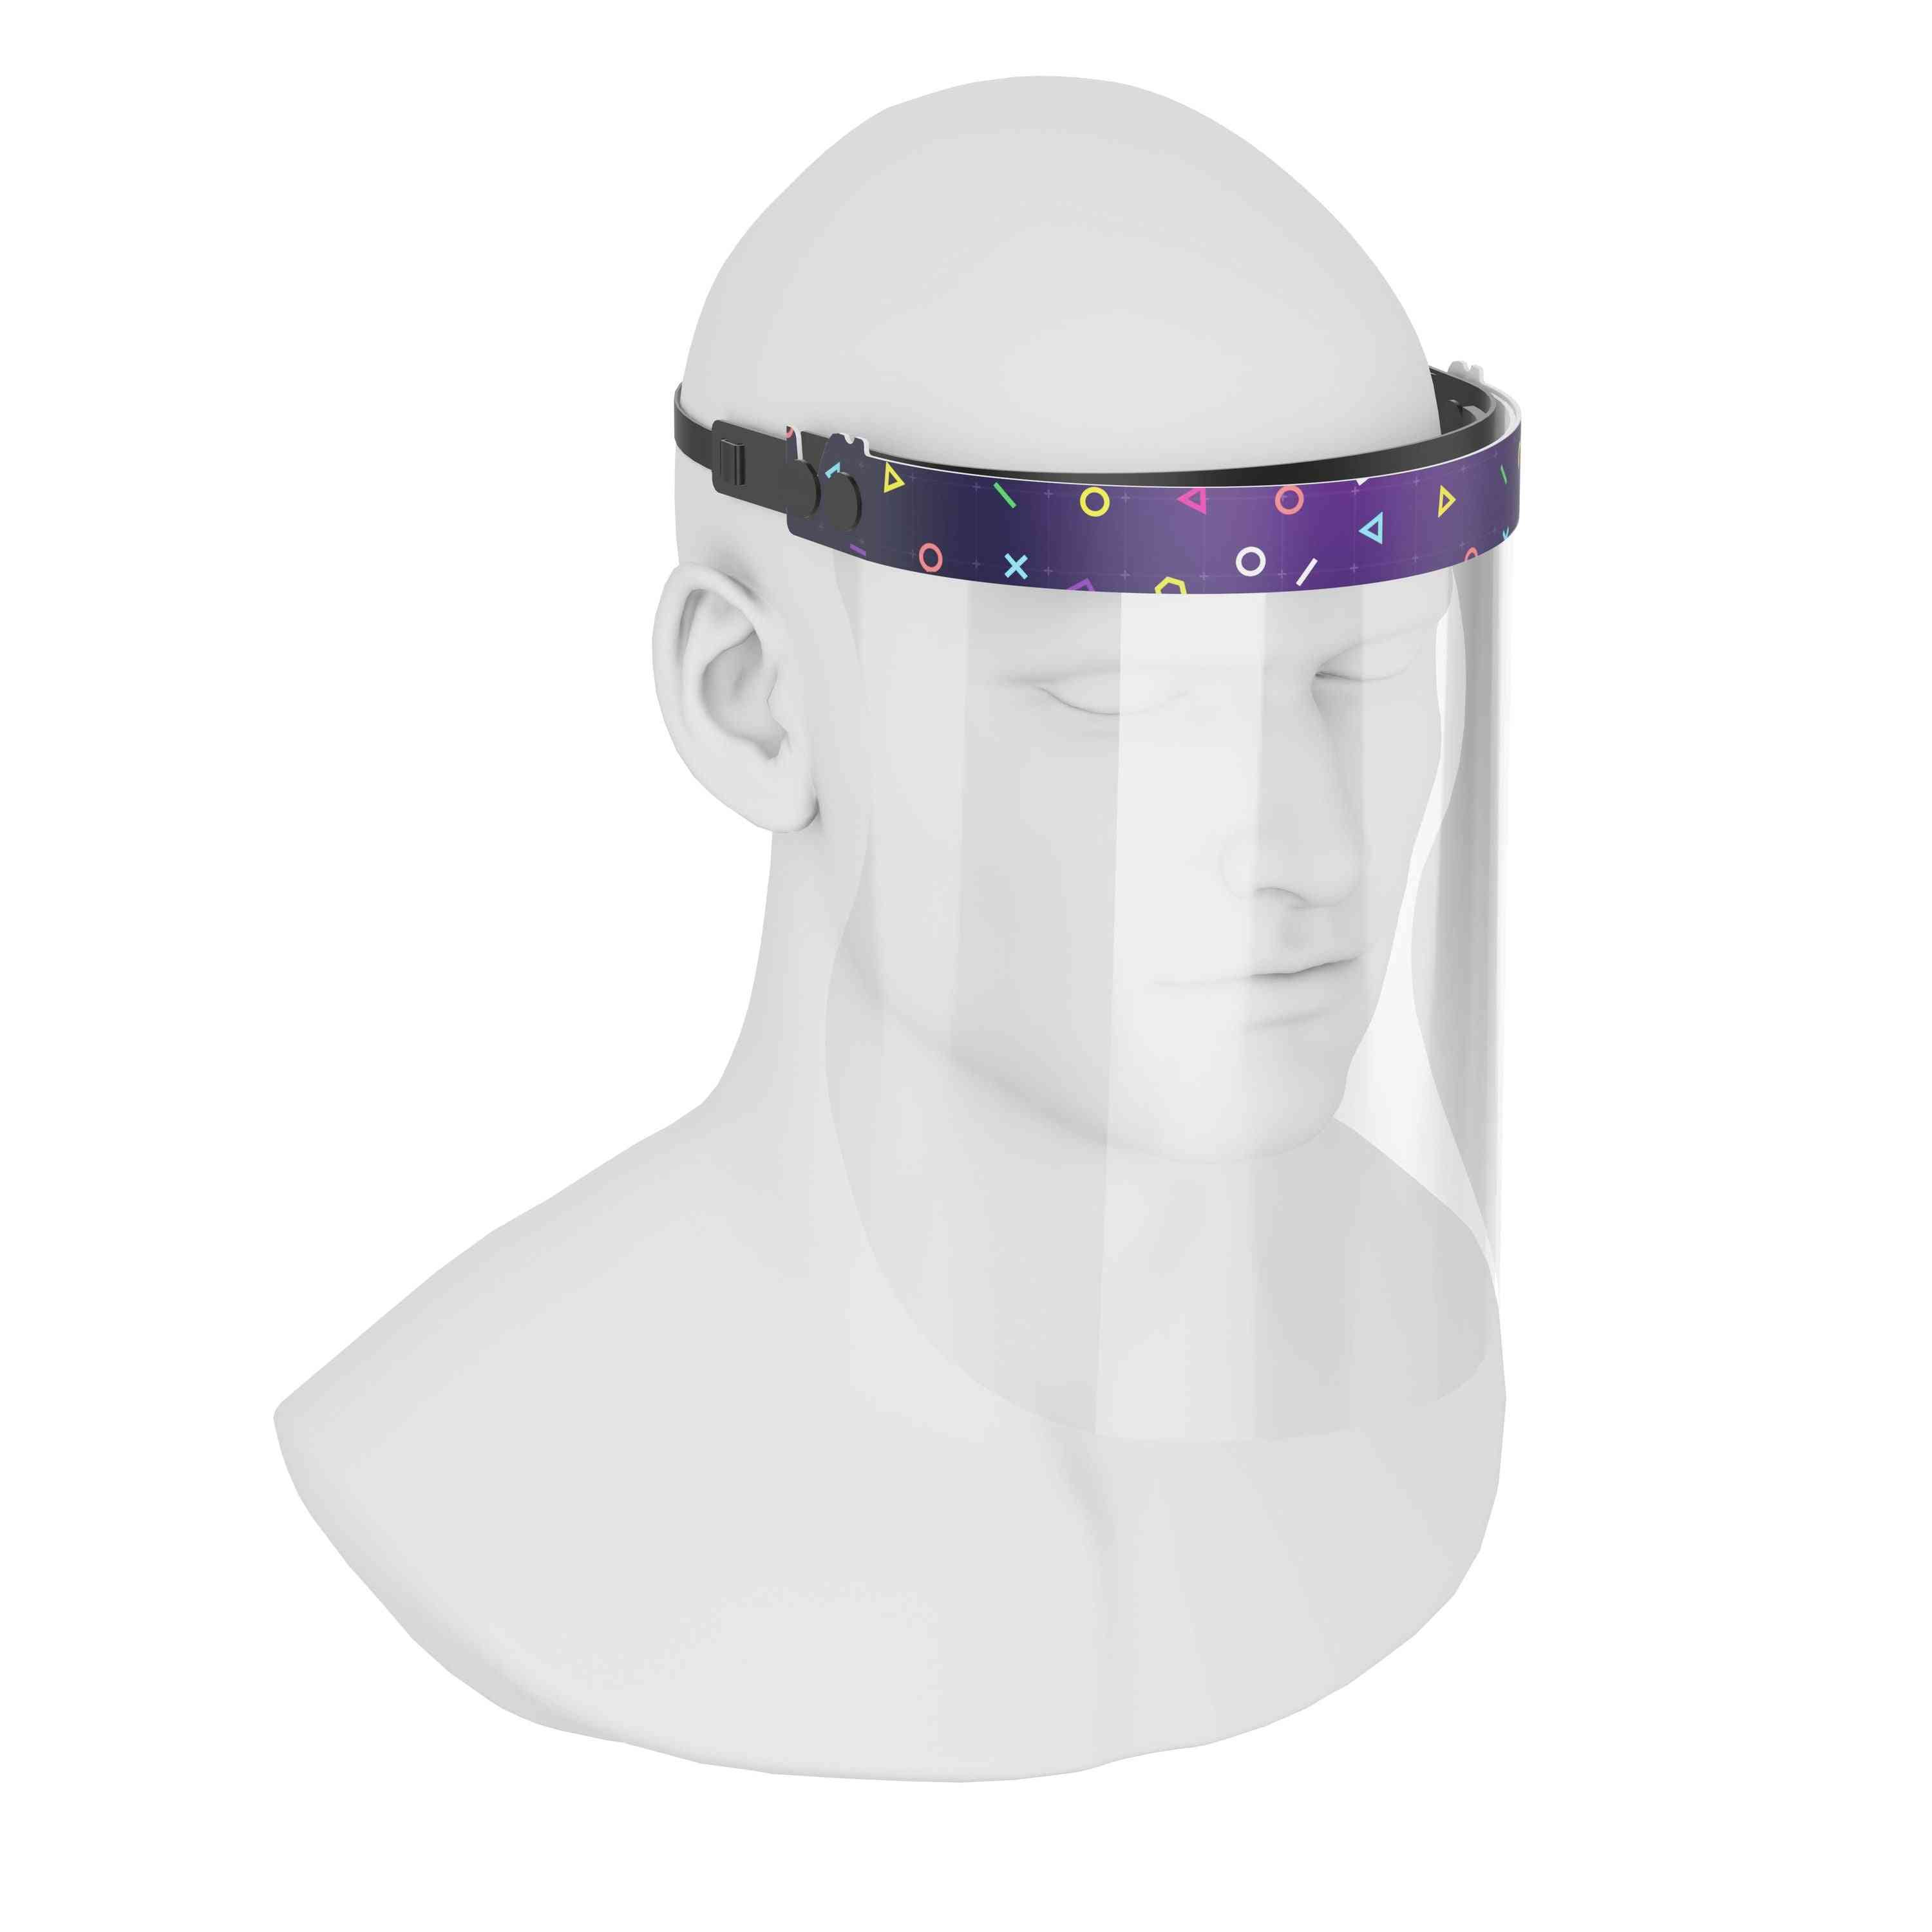 Isolay Face Shield Gamer